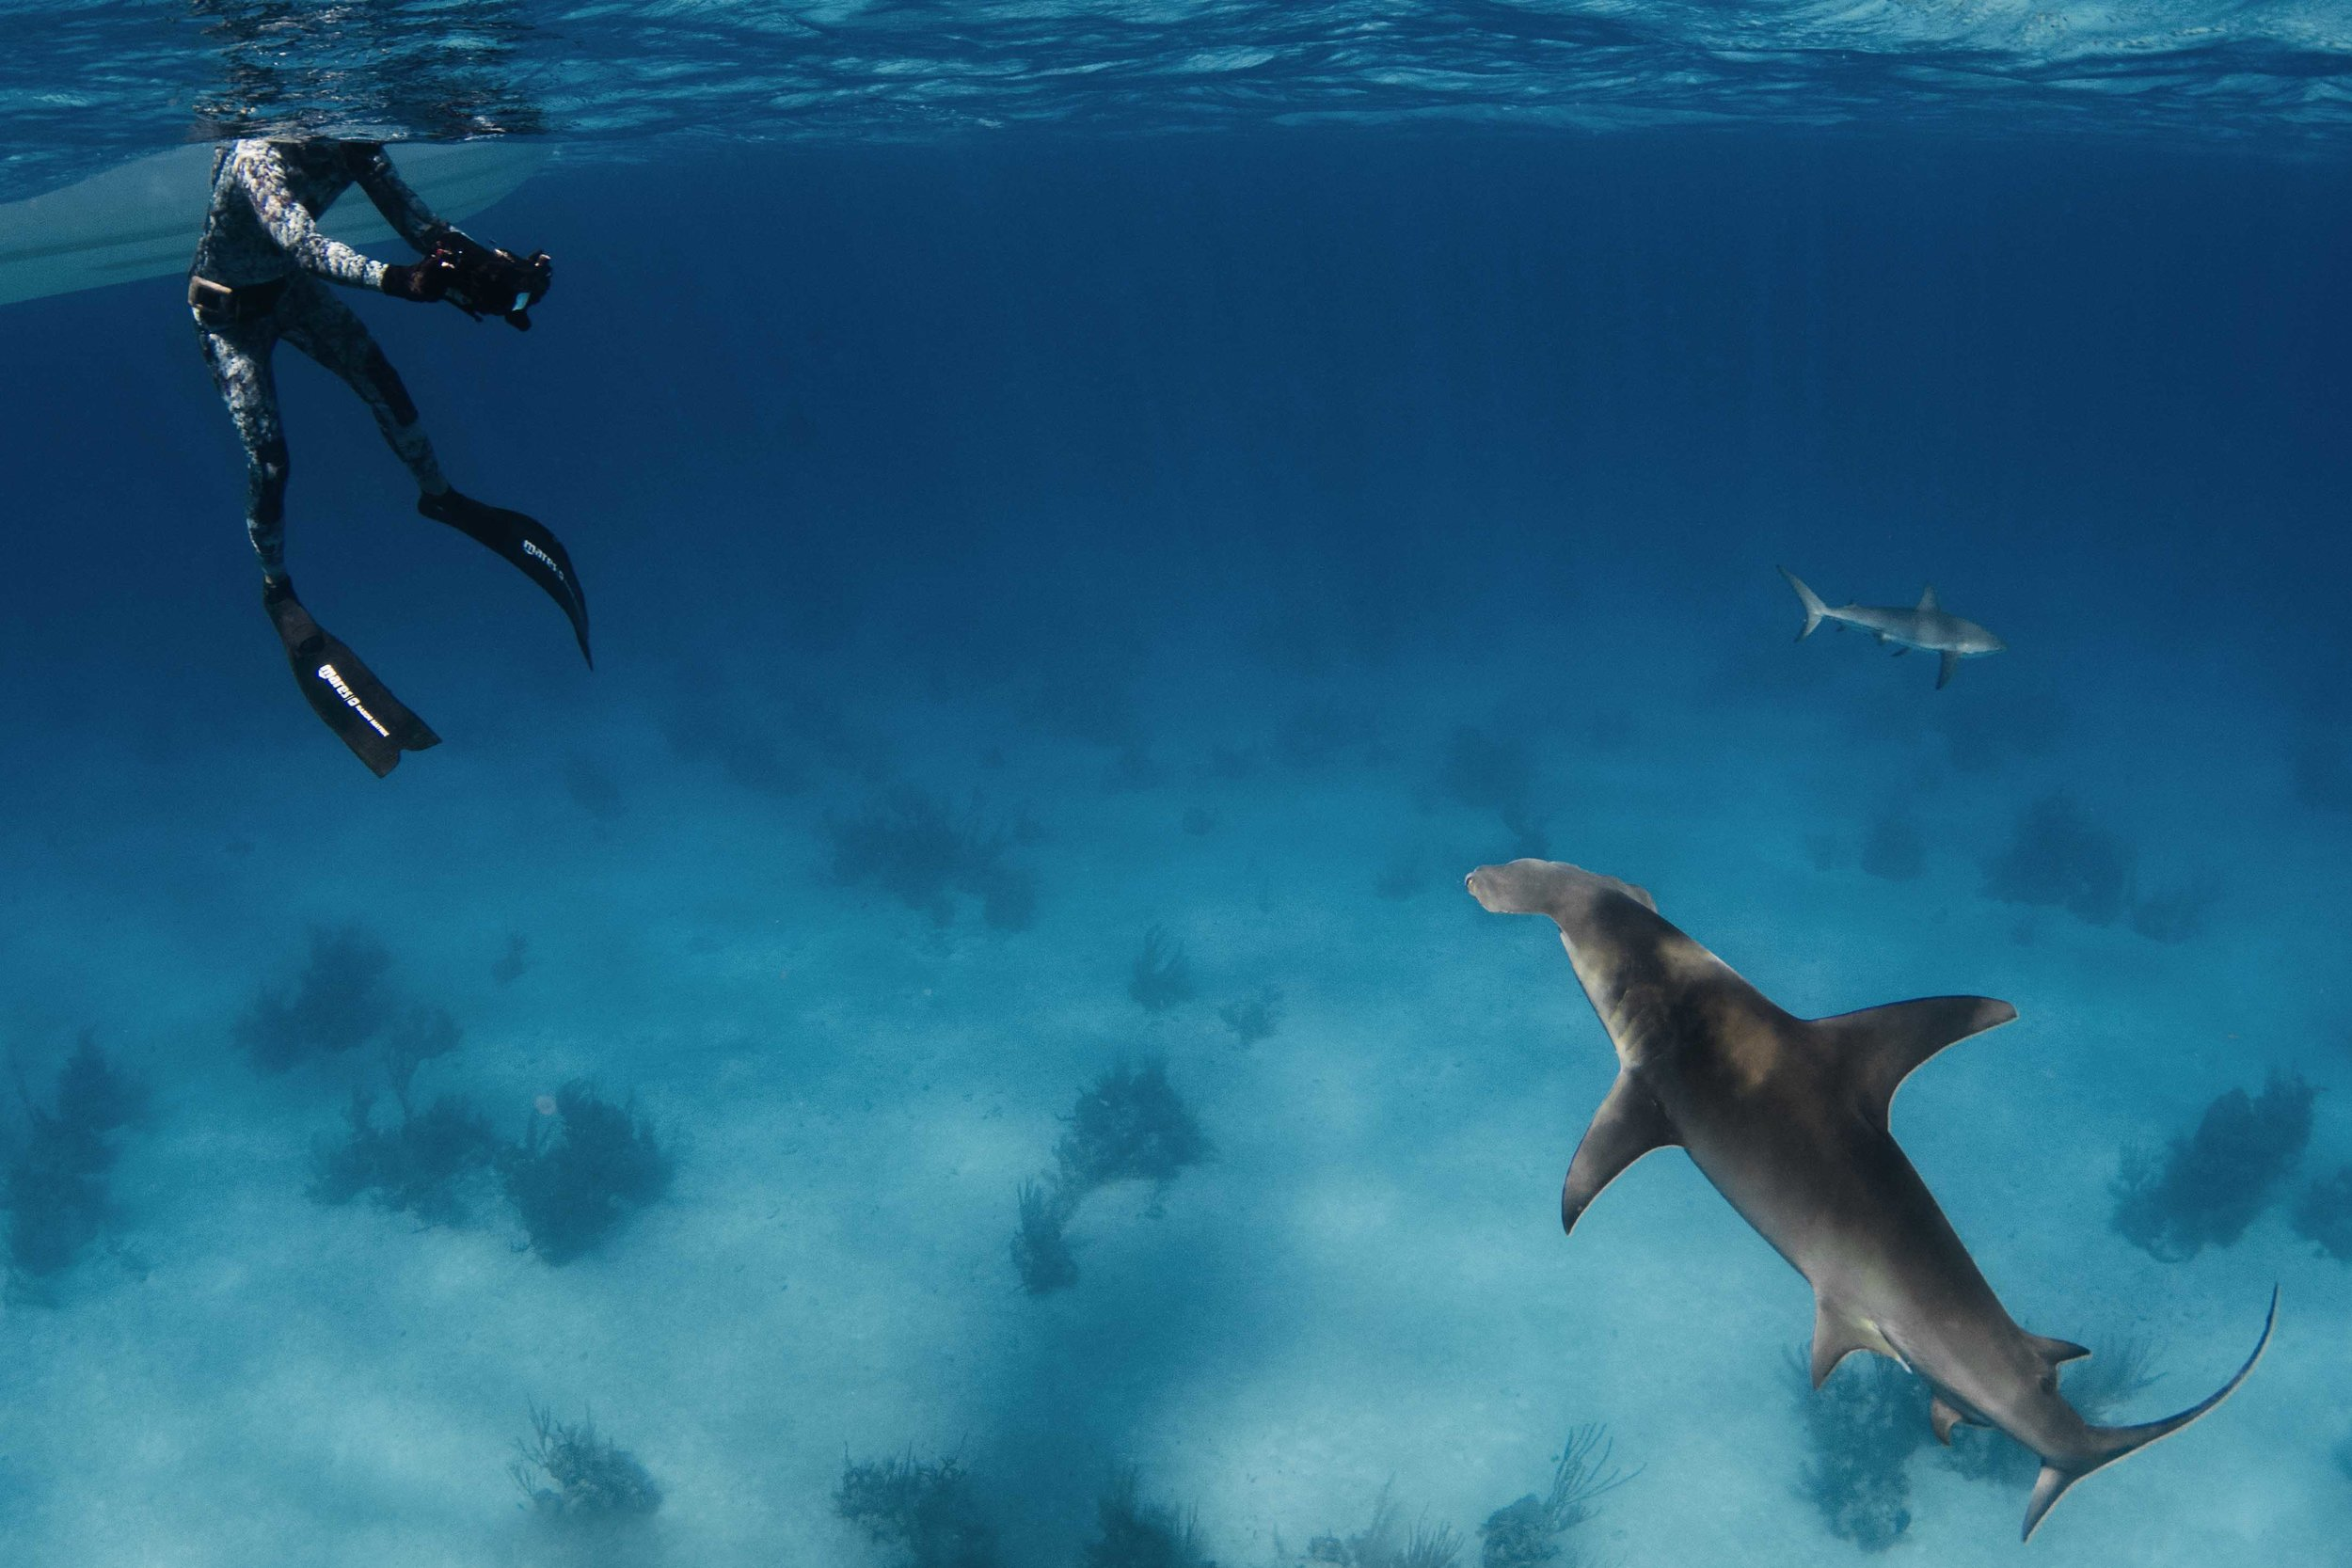 Expedition guest Vince comes face to face with a great hammerhead!